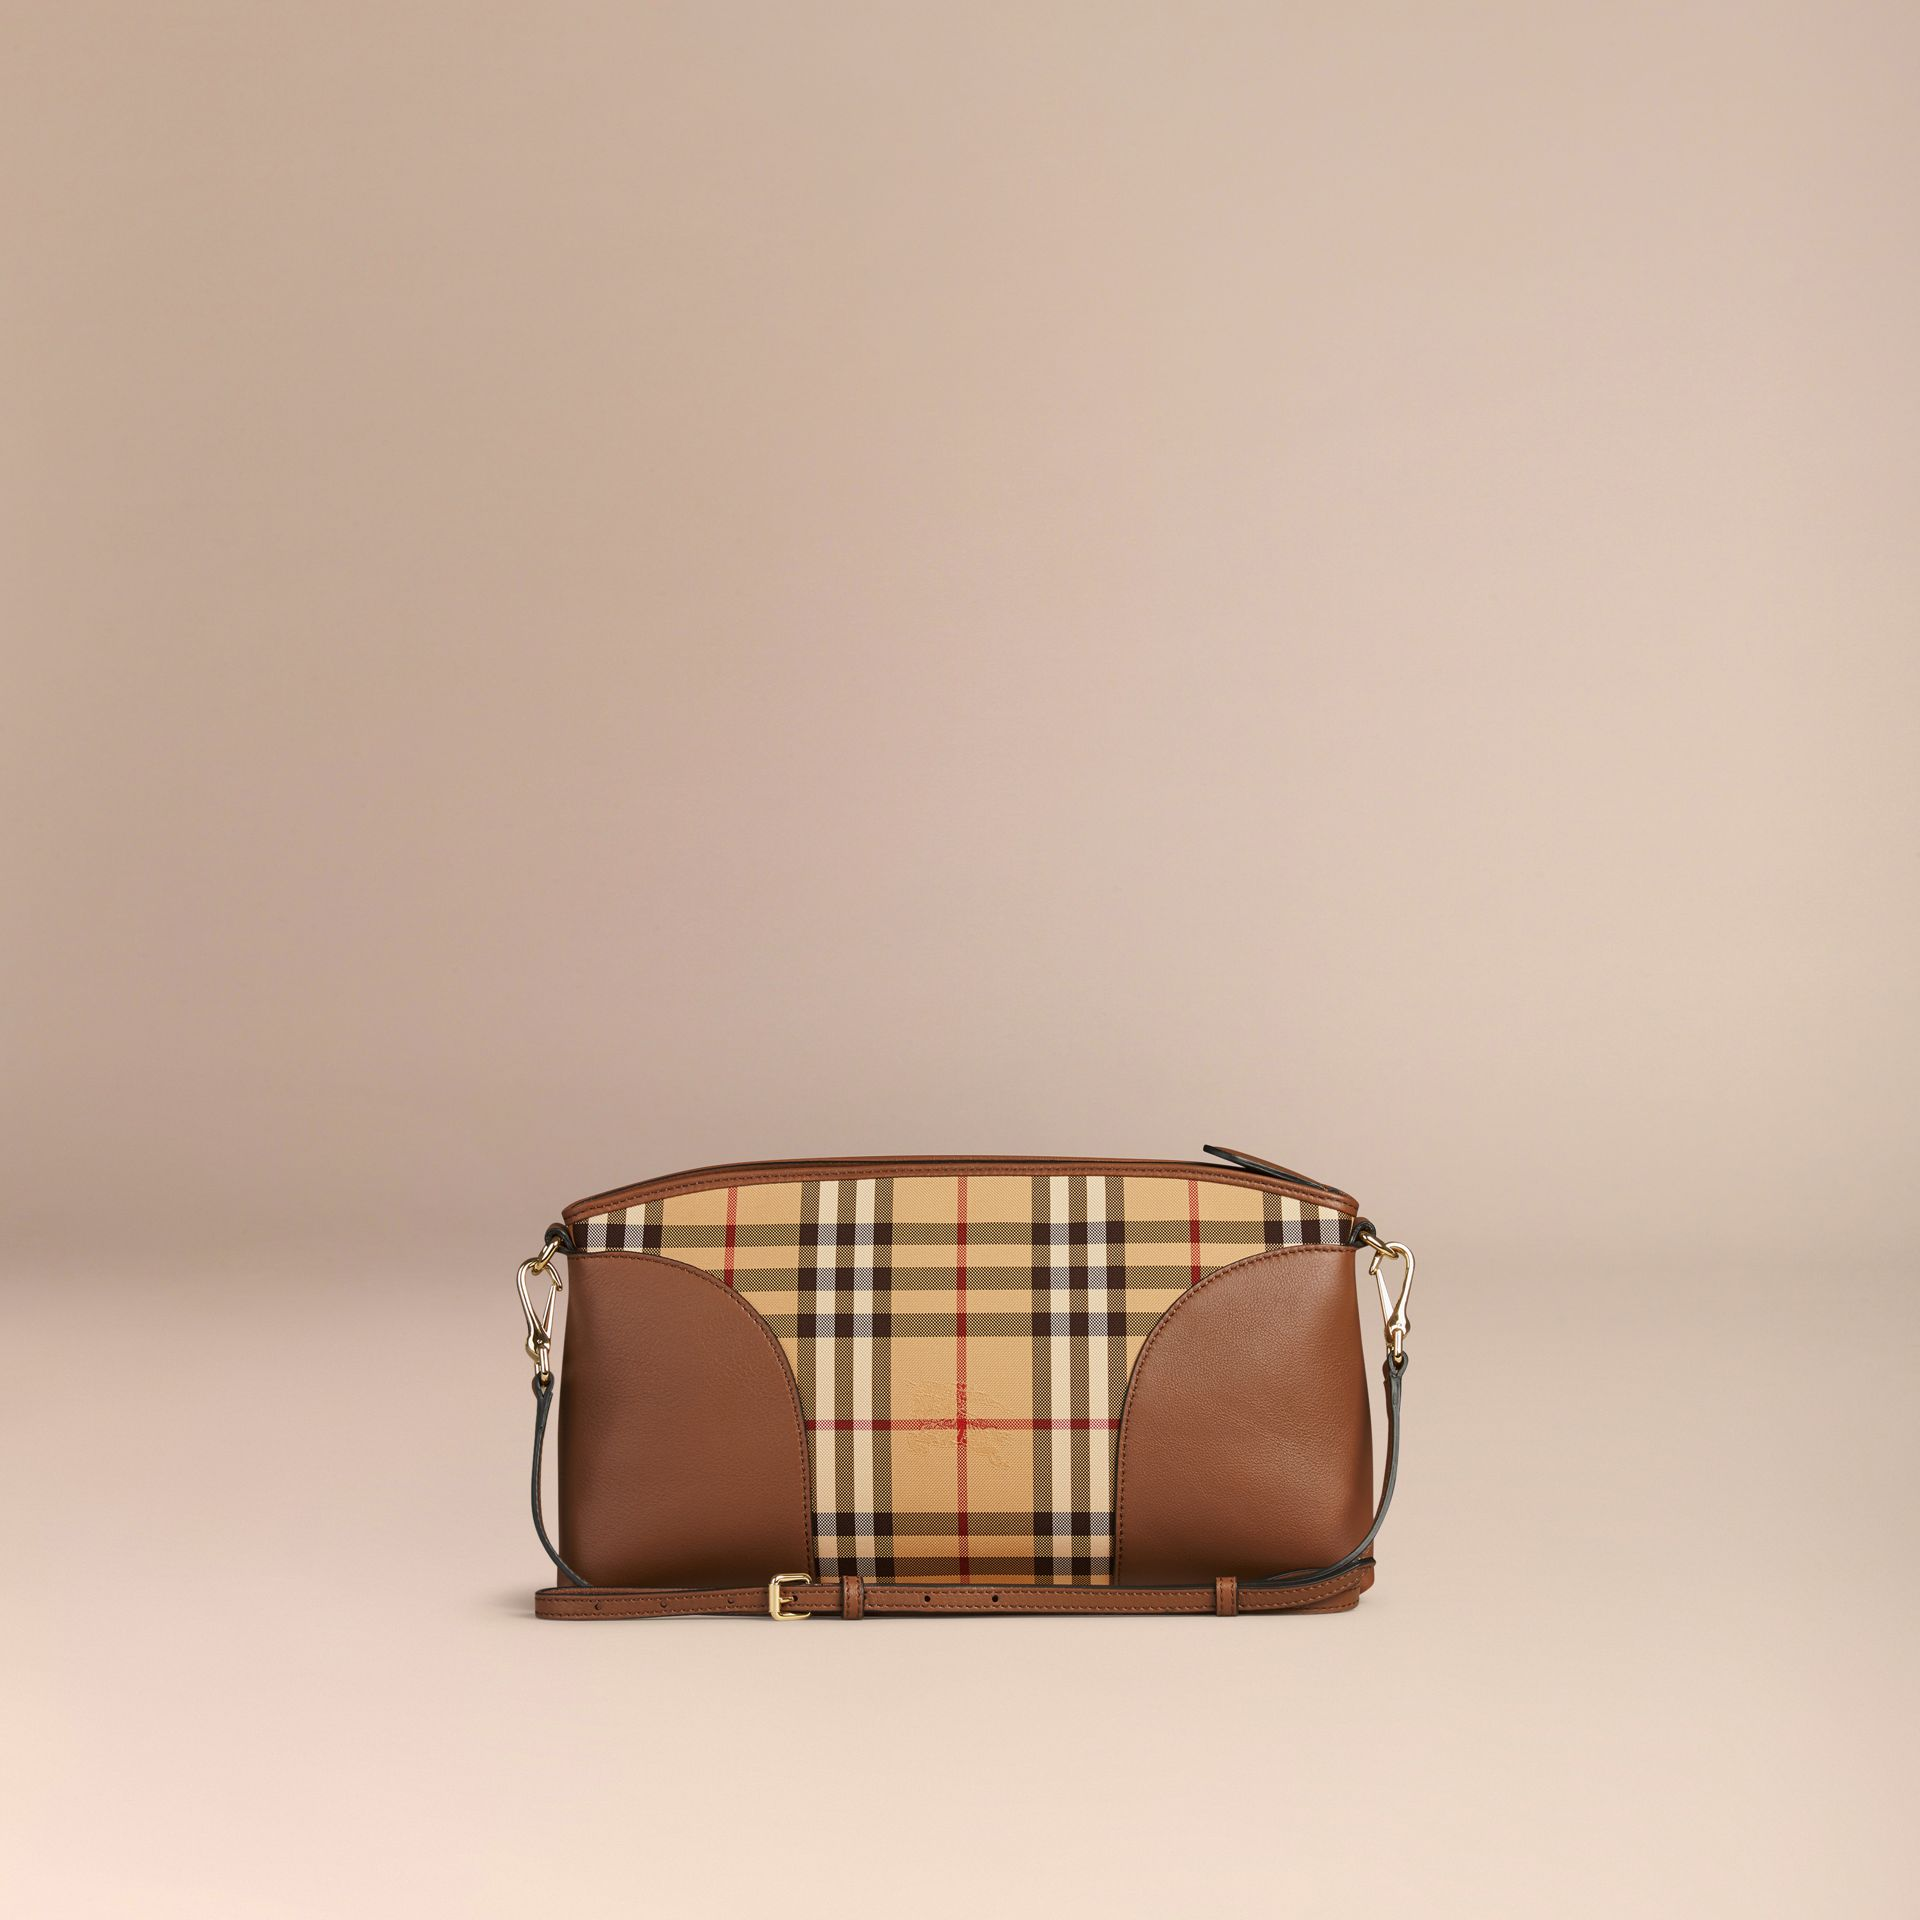 Honey/tan Horseferry Check and Leather Clutch Bag Honey/tan - gallery image 3